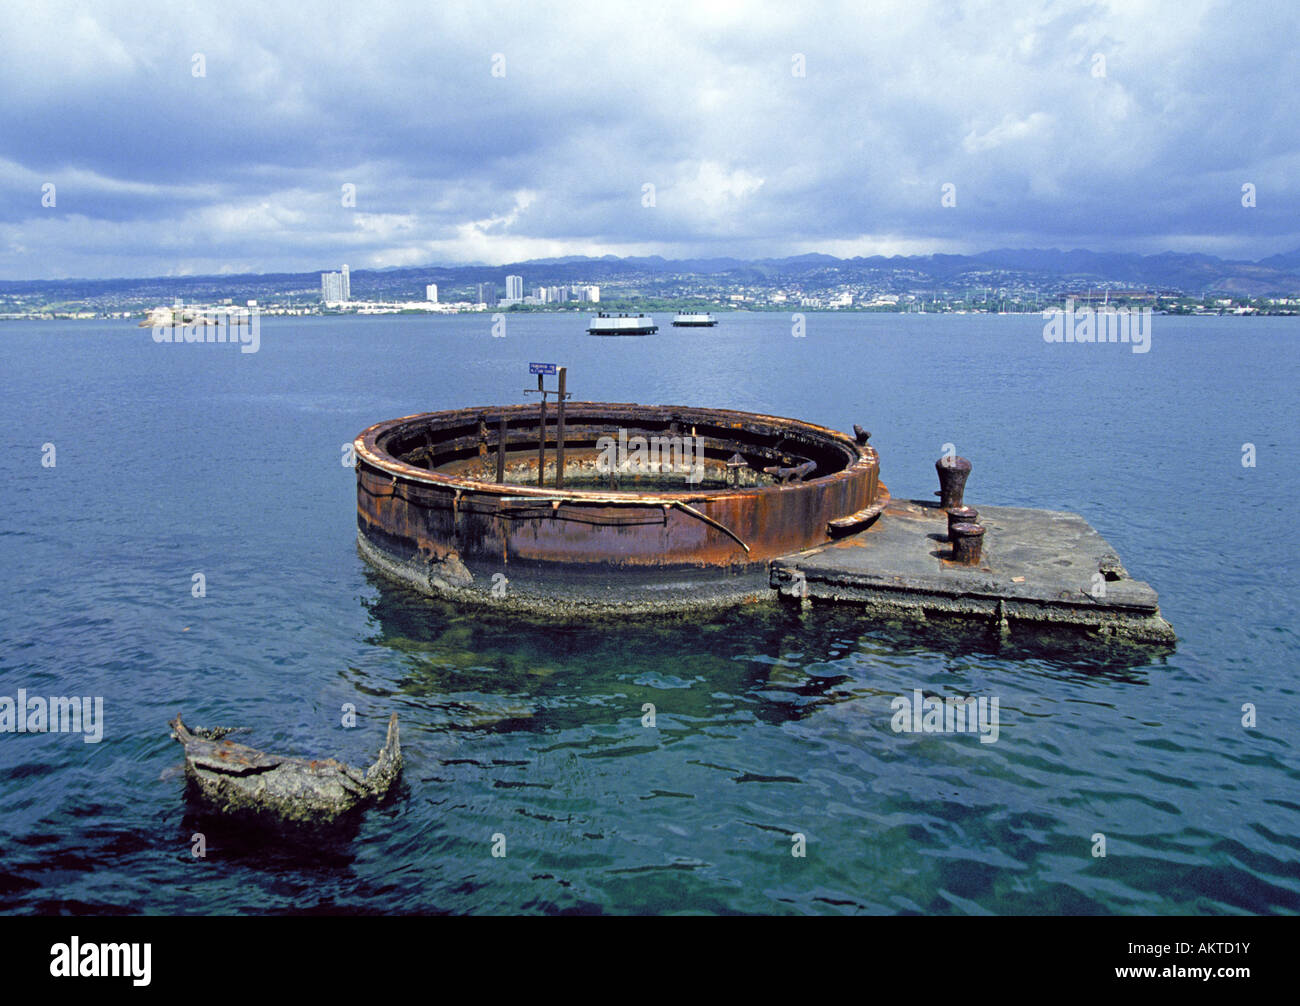 A view of the gun turret of the USS Arizona at the Arizona Memorial at Pearl Harbor Stock Photo